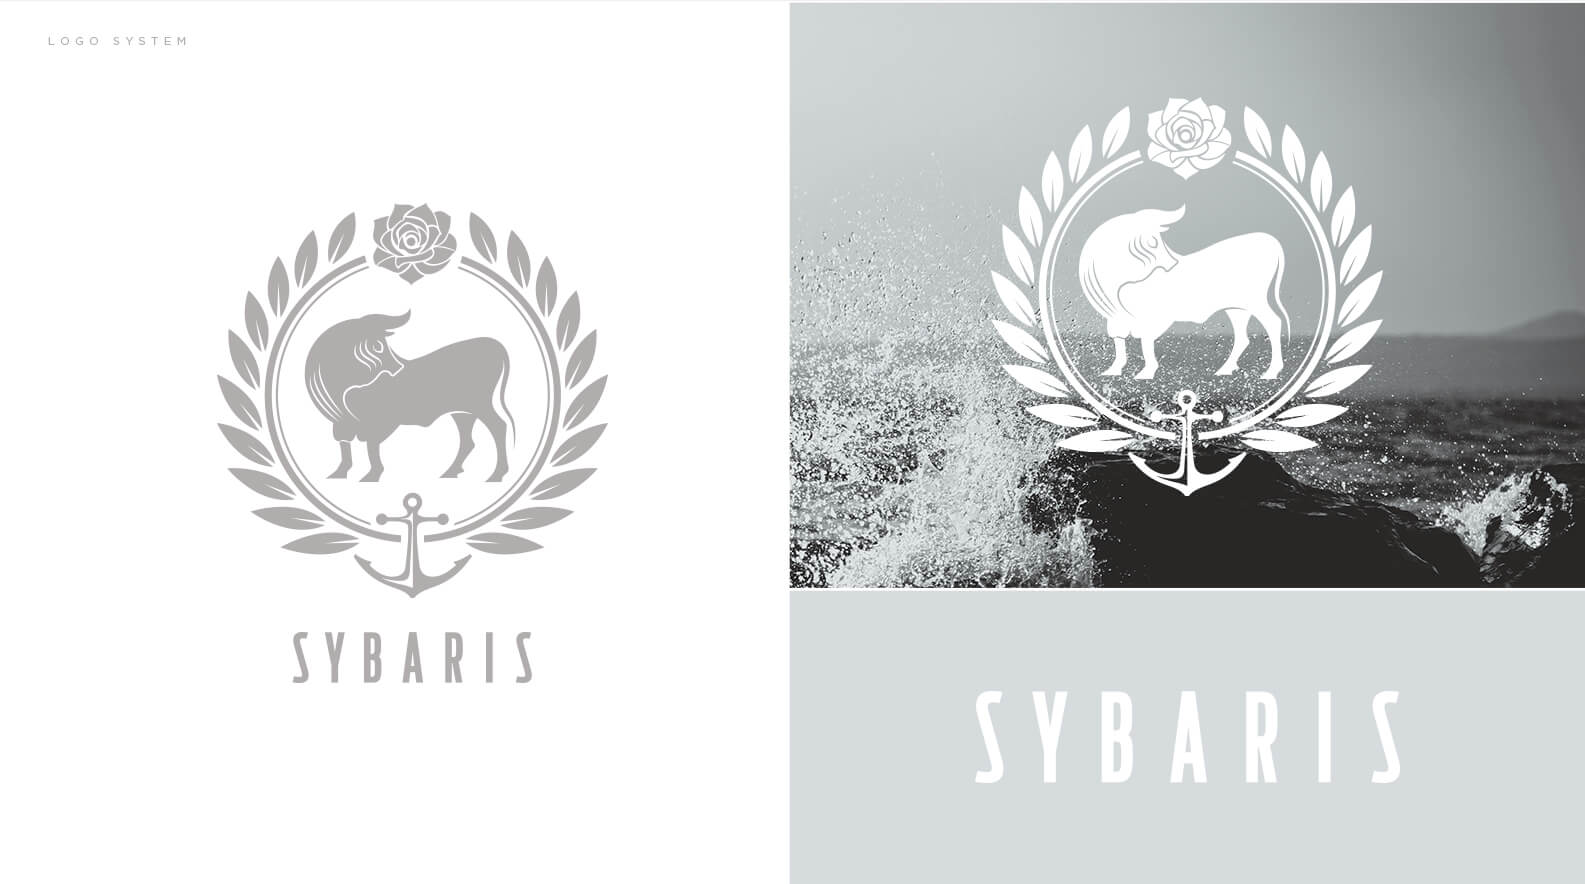 Sybaris logo system and branding by Jacober Creative